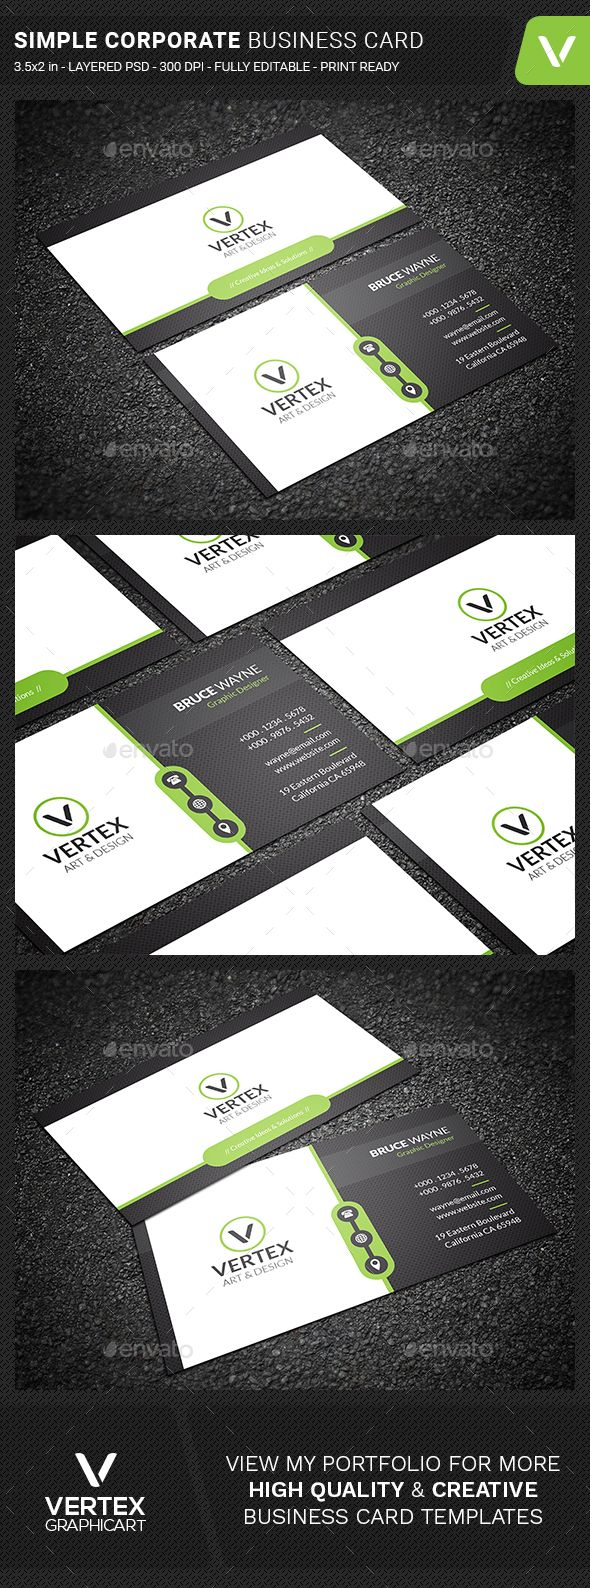 55 Best Business Card Design Images On Pinterest